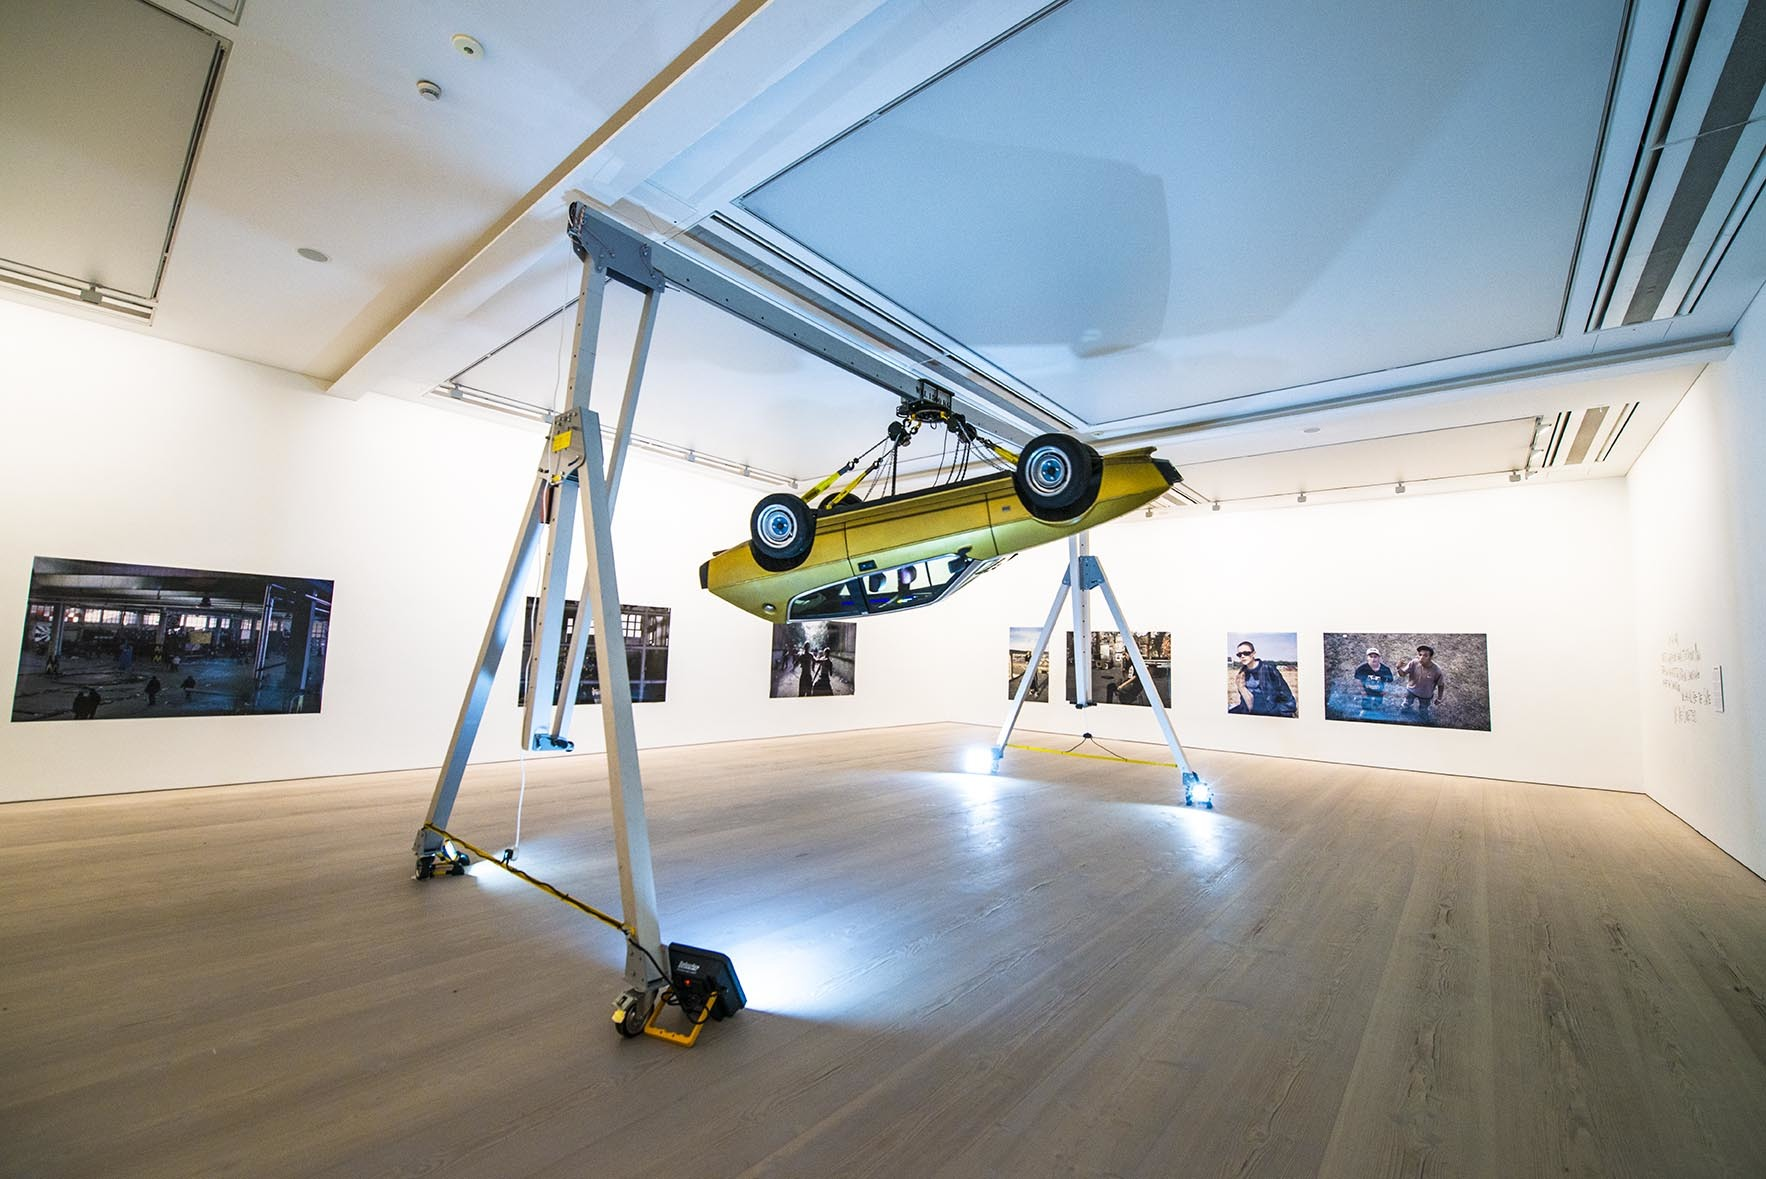 Saatchi gallery car hangs in room